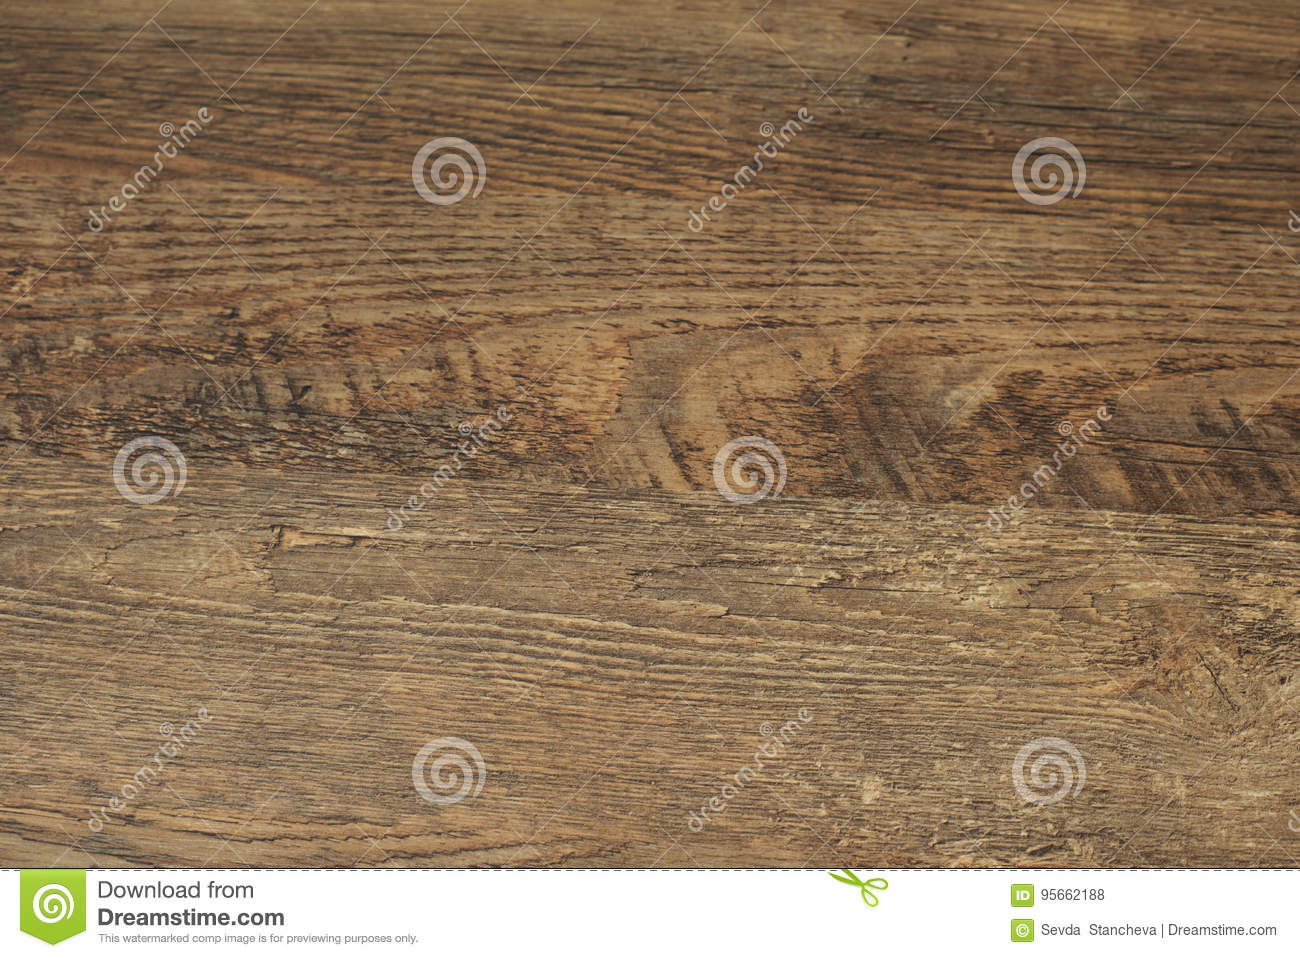 Wood background. Old wood texture. Wooden plank grain background. Striped timber desk close up, old table or floor. Brown boards